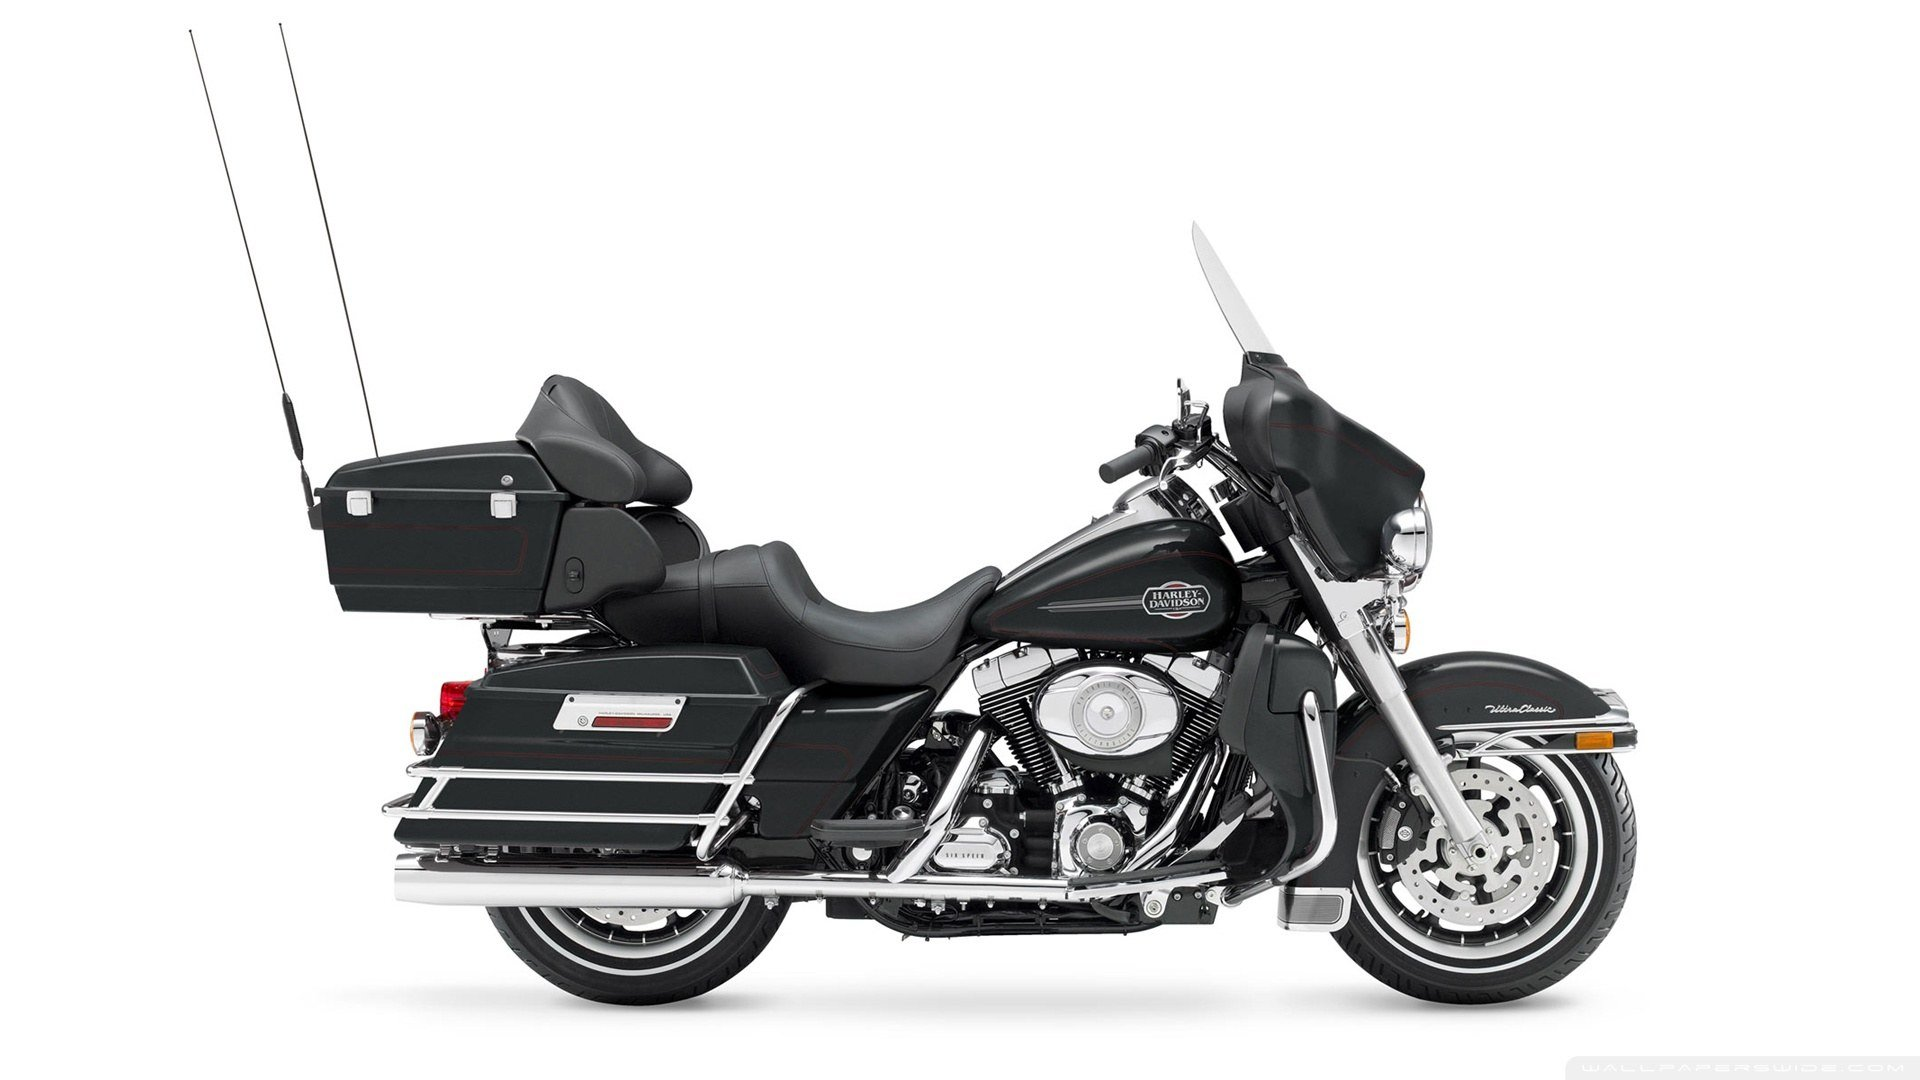 1920x1080 - Harley-Davidson Electra Glide Ultra Classic Wallpapers 24